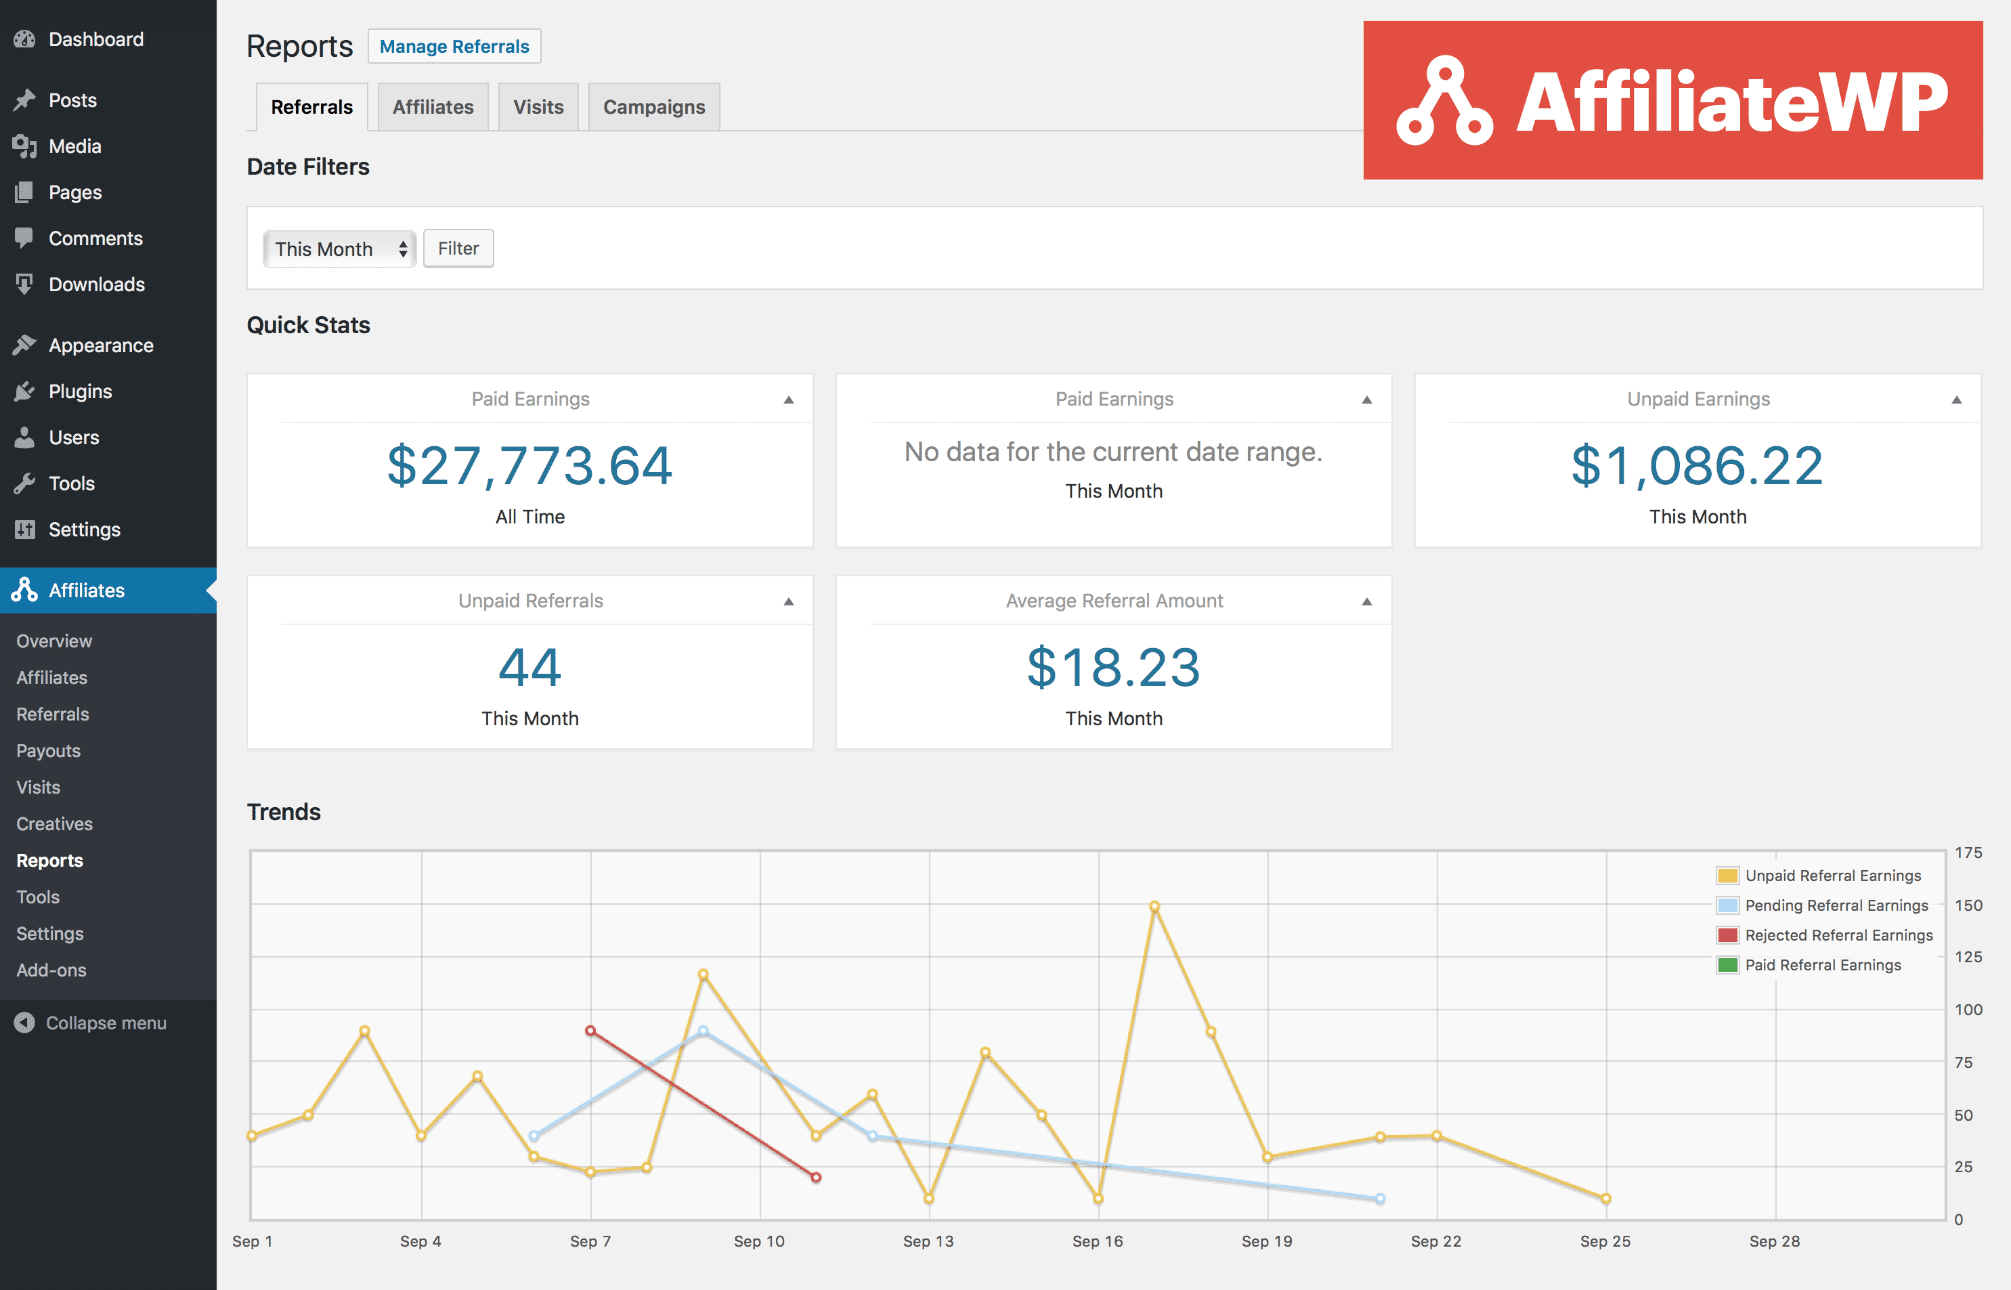 AffiliateWP referrals